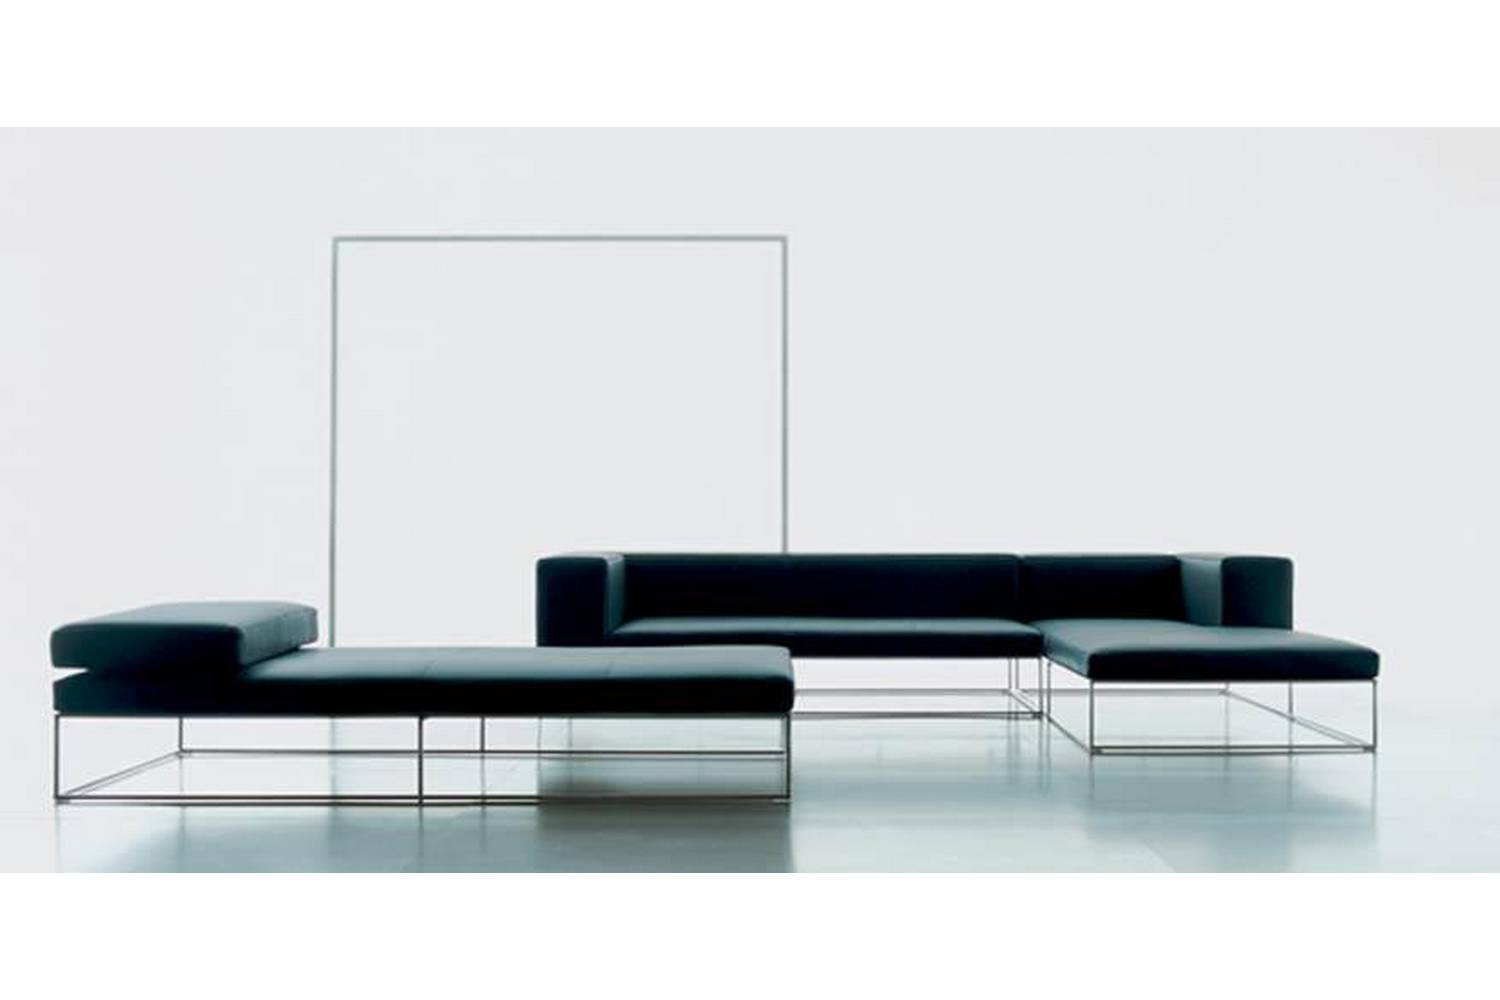 Living Divani Sofa Price Ile Sofa By Piero Lissoni For Living Divani Space Furniture